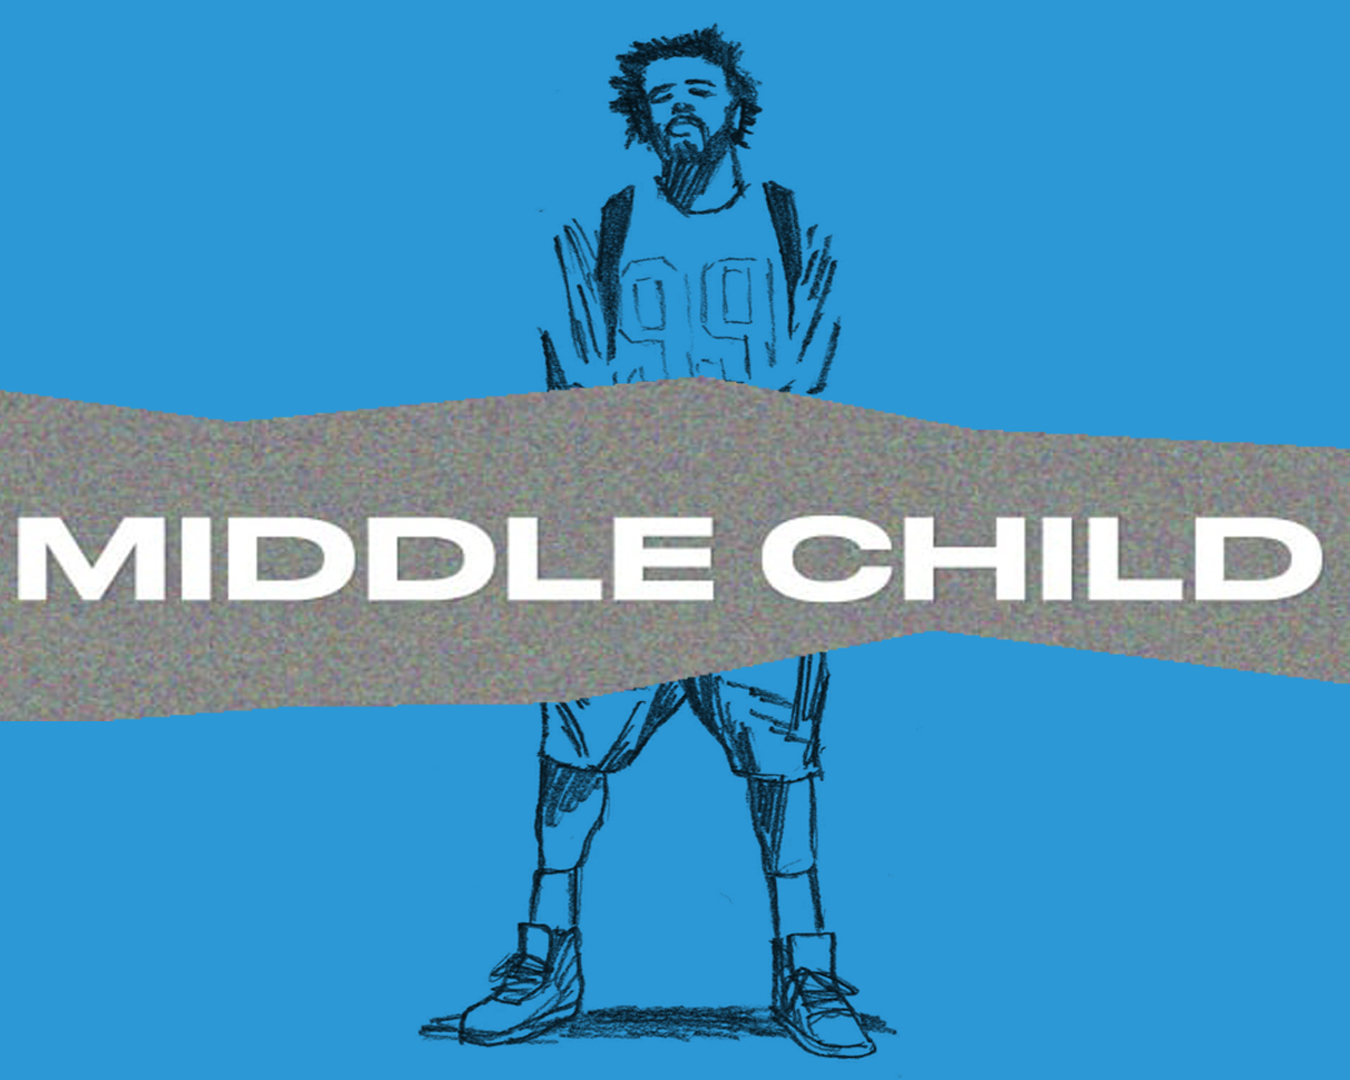 """Middle Child"" points out the rap industry's shortcomings, and gives the black community hope. (Illustration via Luca Bowles, Kingston University)"